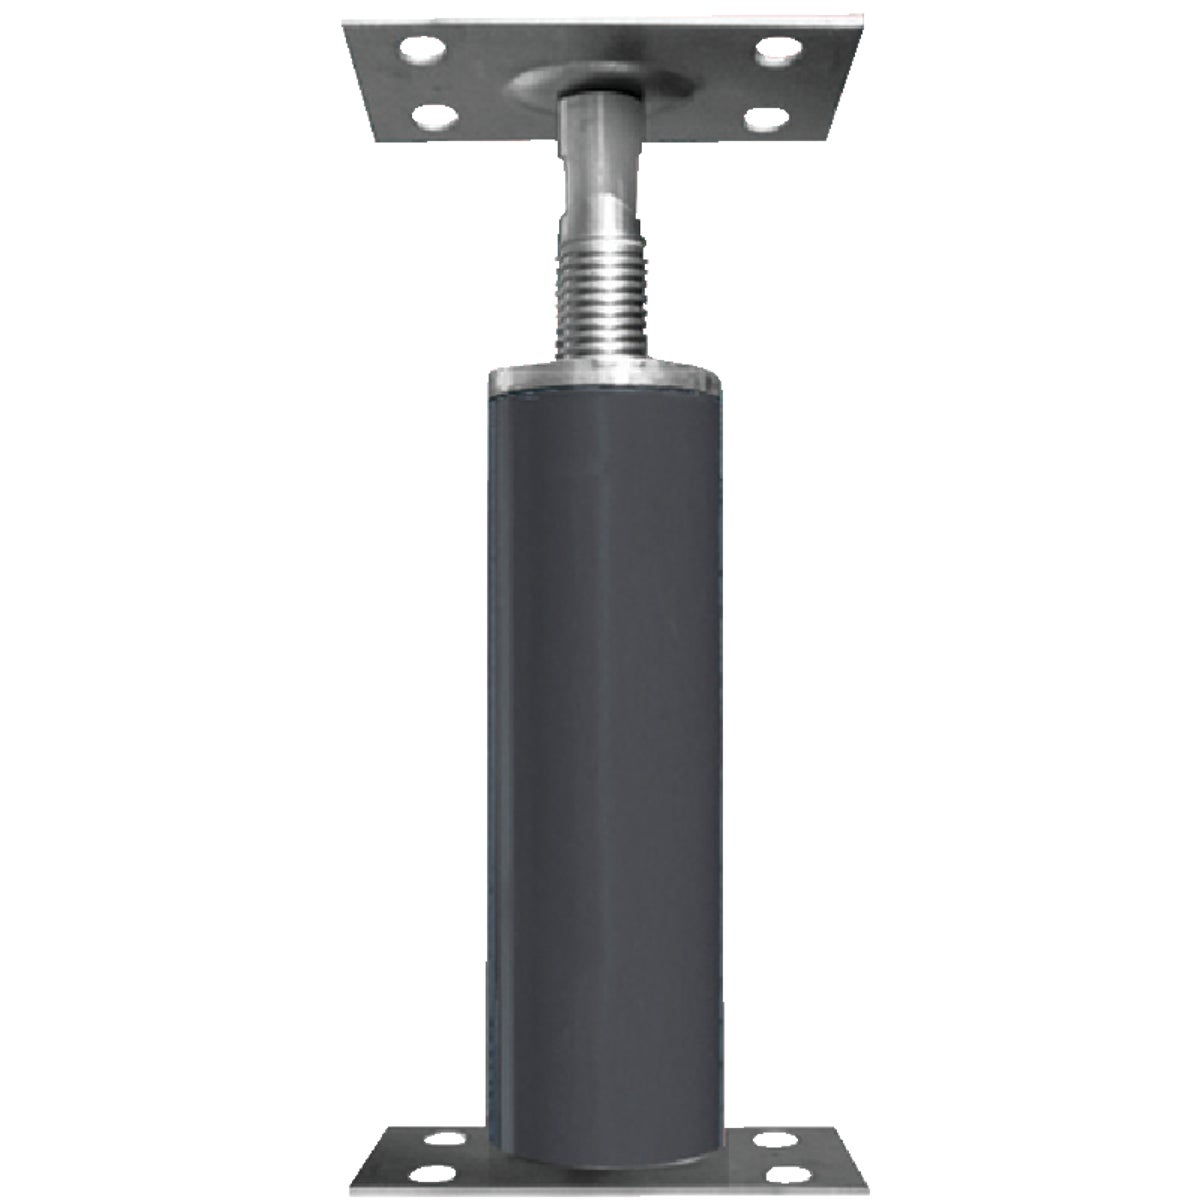 "1' 0""- 1' 4"" FLOOR JACK - C-4 by Akron Products"